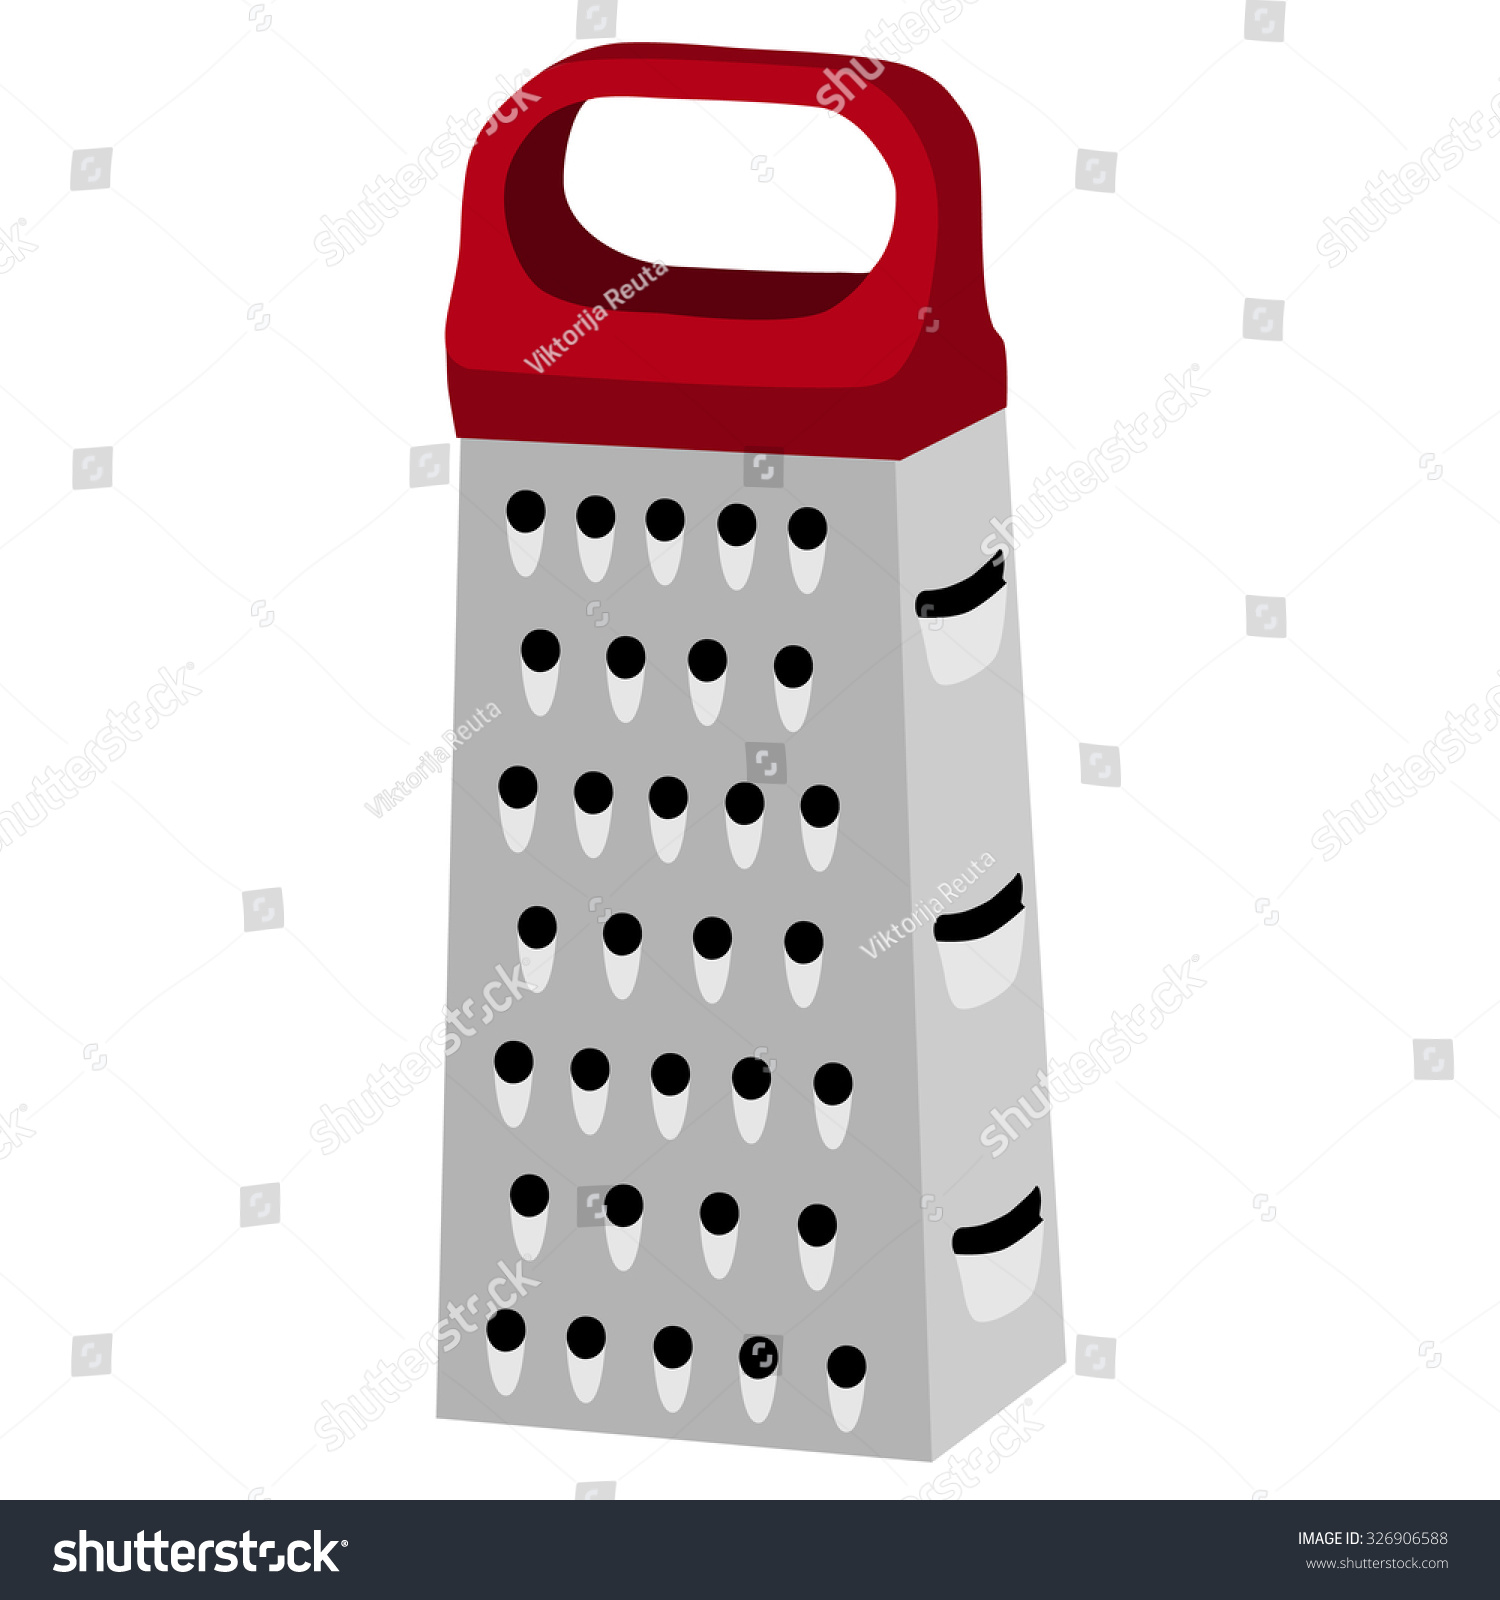 Royalty Free Stock Illustration Of Cheese Grater Red Handle Grater